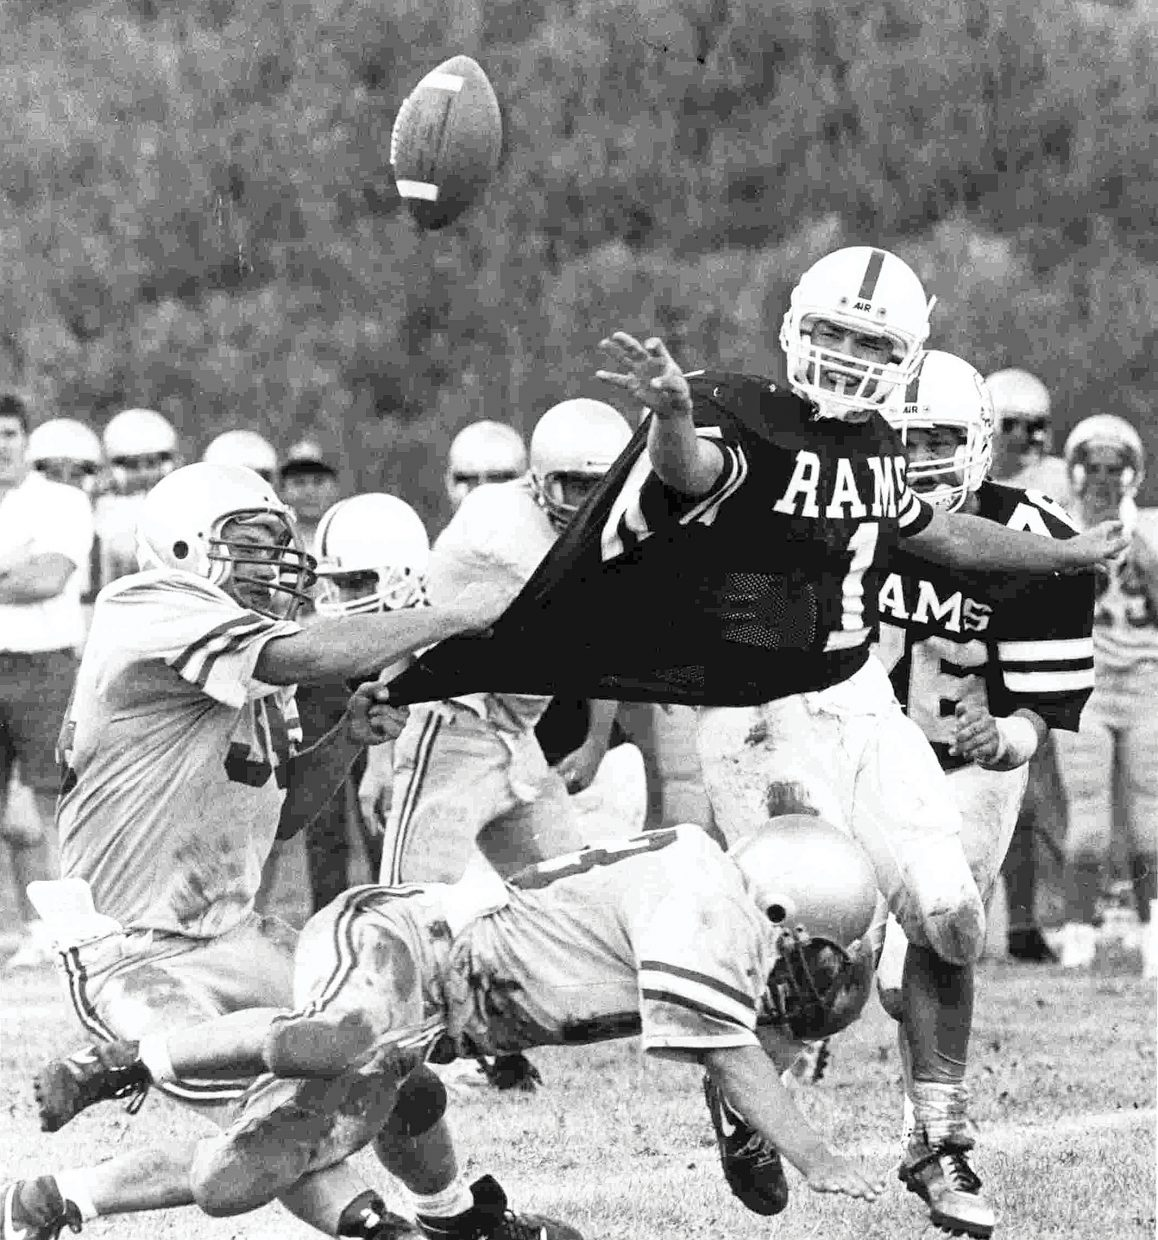 Unknown — I can't remember the exact year this photograph was taken, but the cool thing is it sums up just about every Soroco High School football game I've ever covered. The tough-as-nails quarterback making the pitch despite the fact that he's being pulled down from behind and tackled at the same time shows the traditional character of Rams' football teams. The mud on the jersey was just an added bonus.